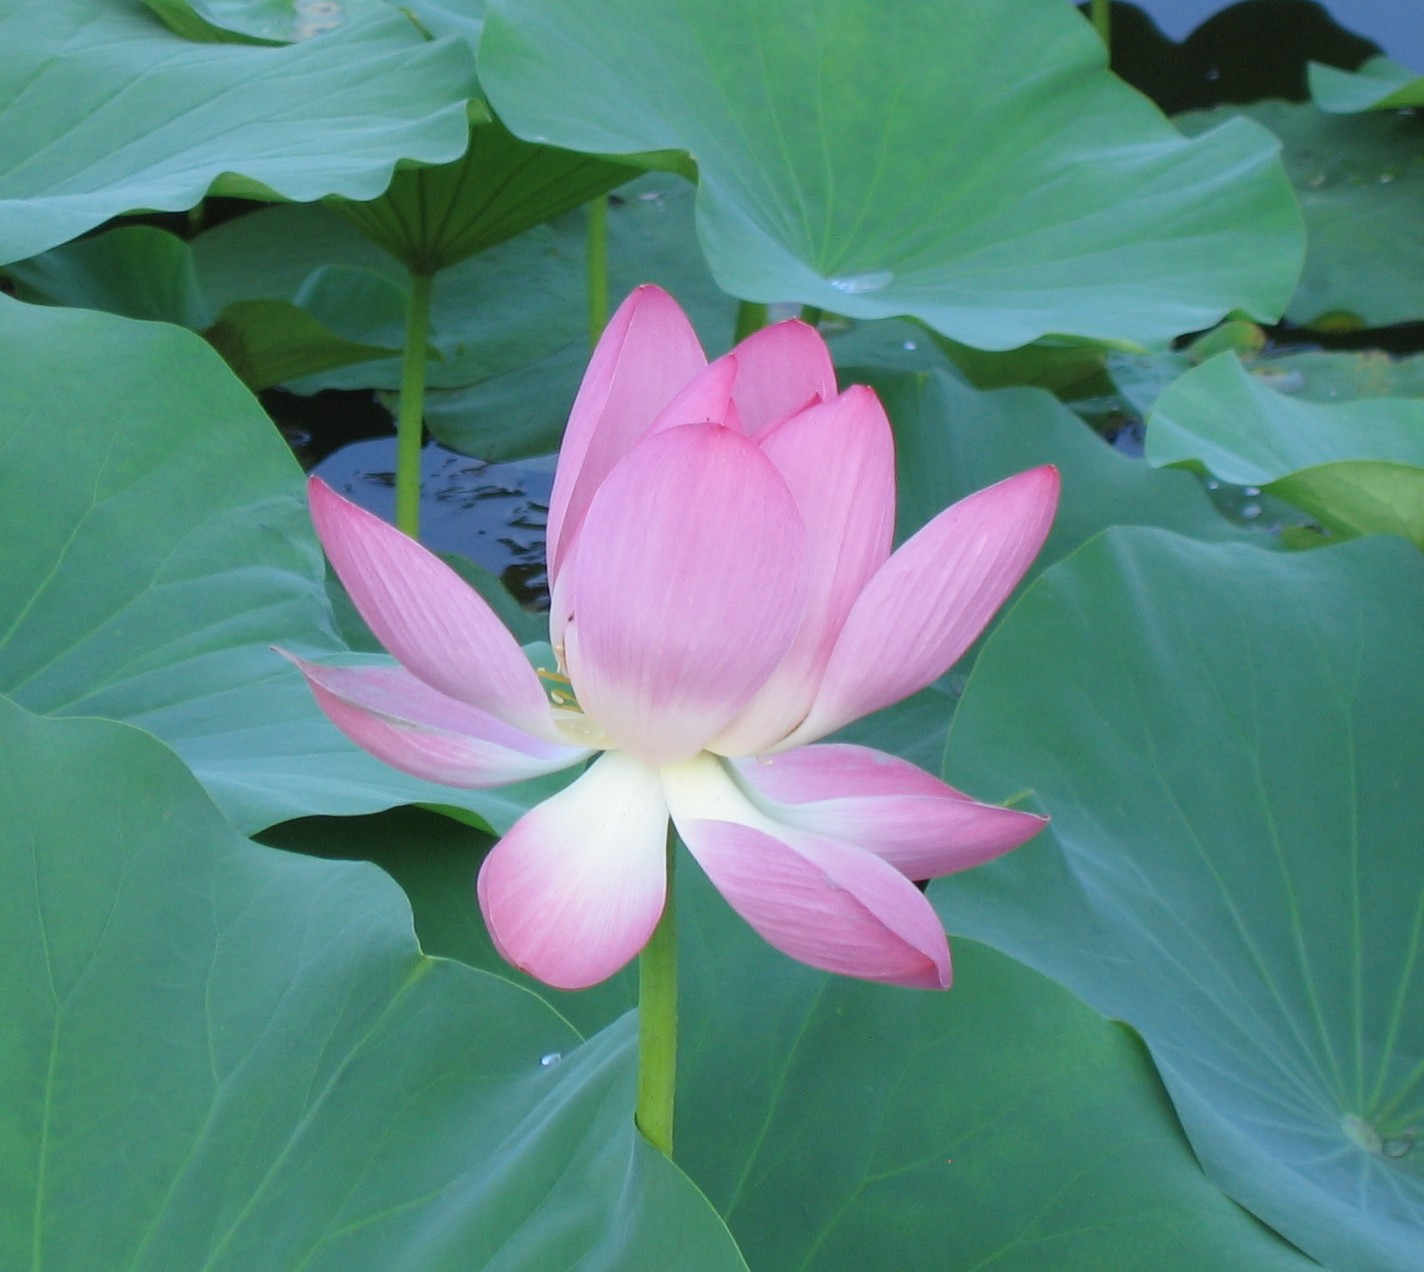 English: pink lily flower